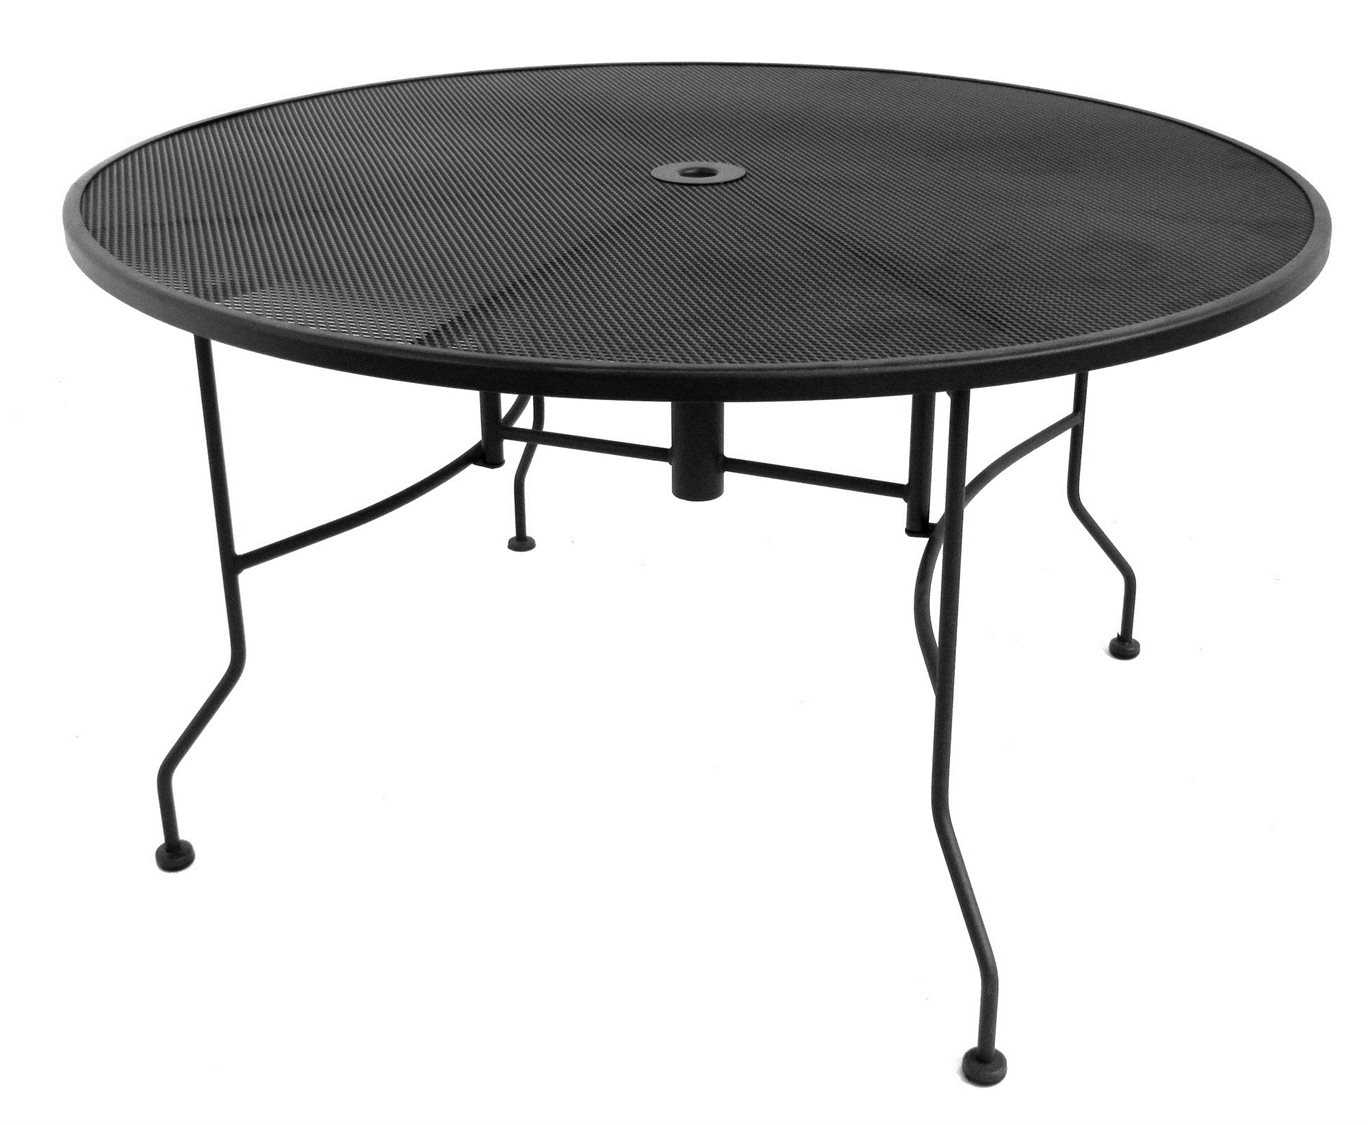 Meadowcraft Wrought Iron 60 Round Micro Mesh Dining Table  : MD309600001zm from www.luxedecor.com size 1368 x 1125 jpeg 75kB